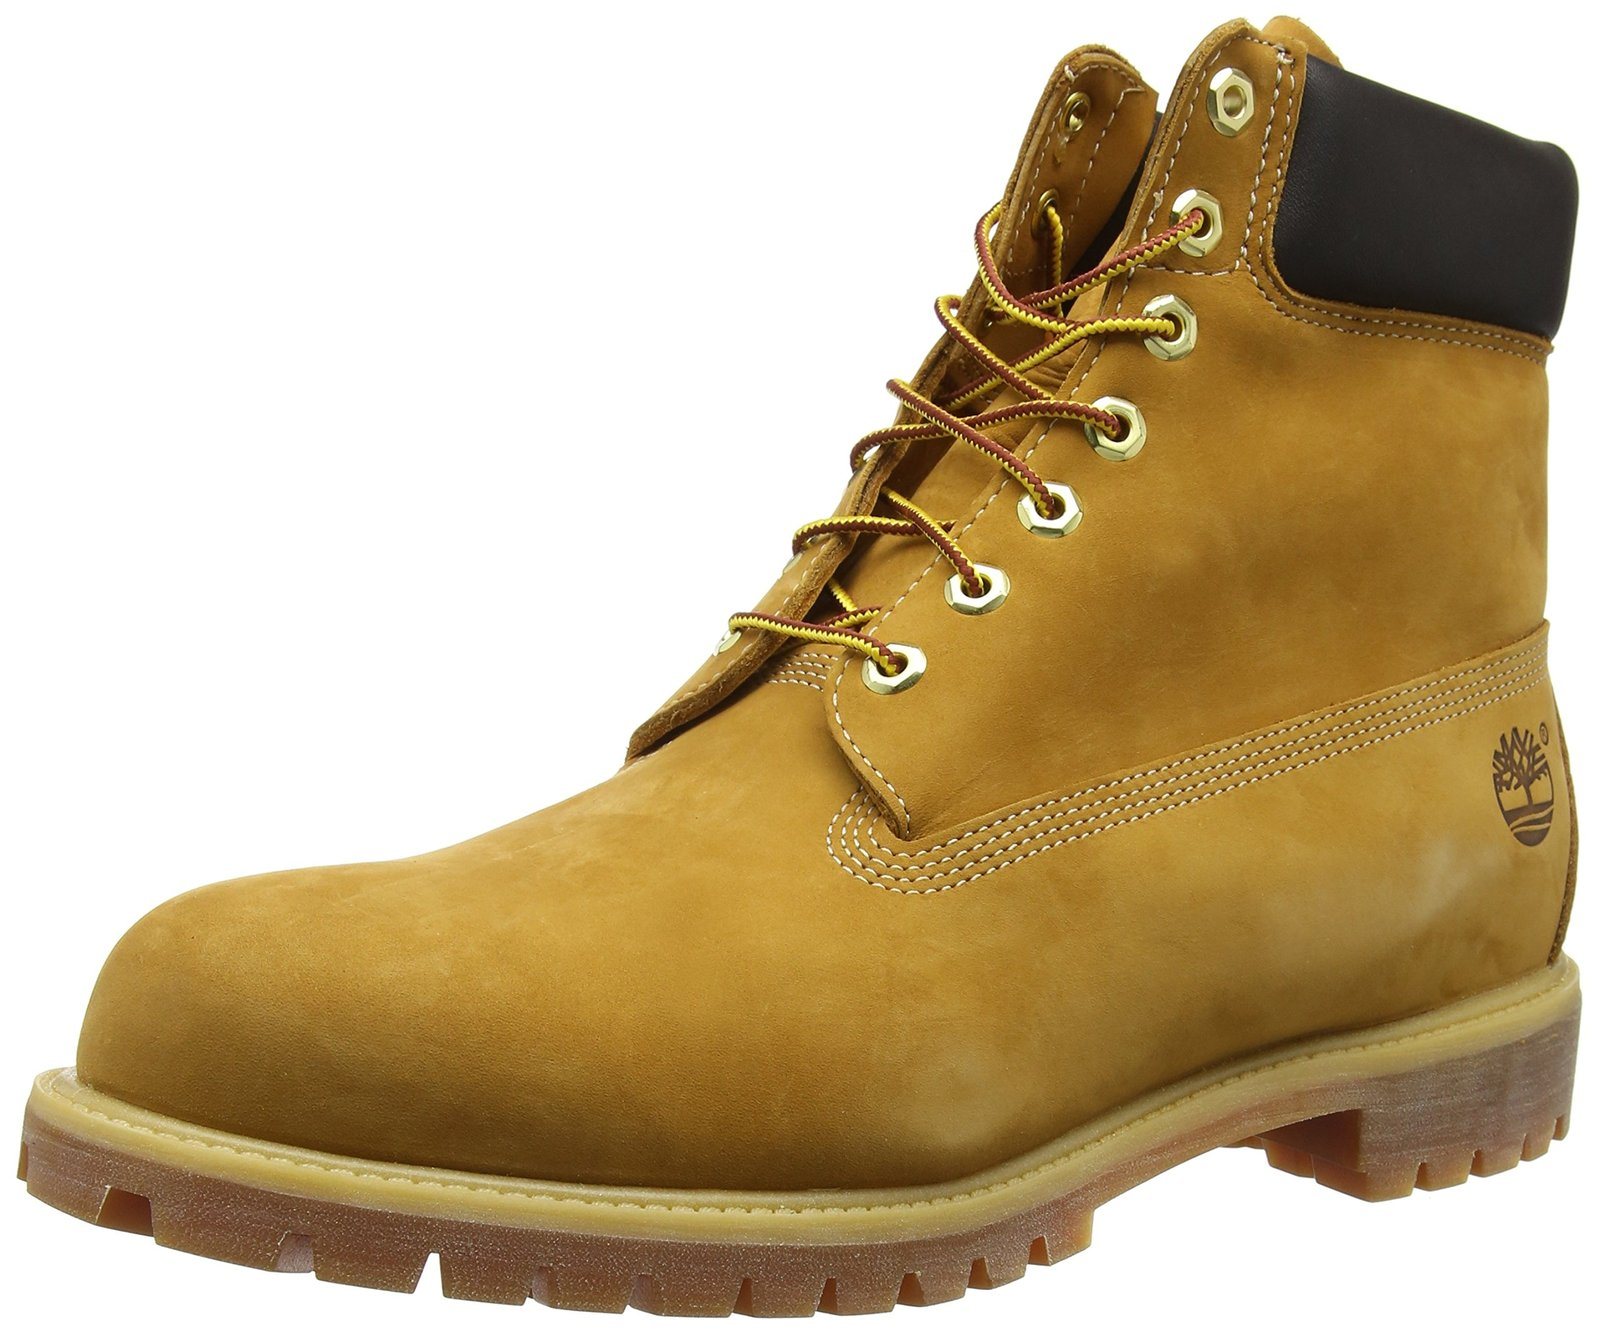 Timberland Men's 6 inch Premium Waterproof Boot,Wheat Nubuck,8 M US